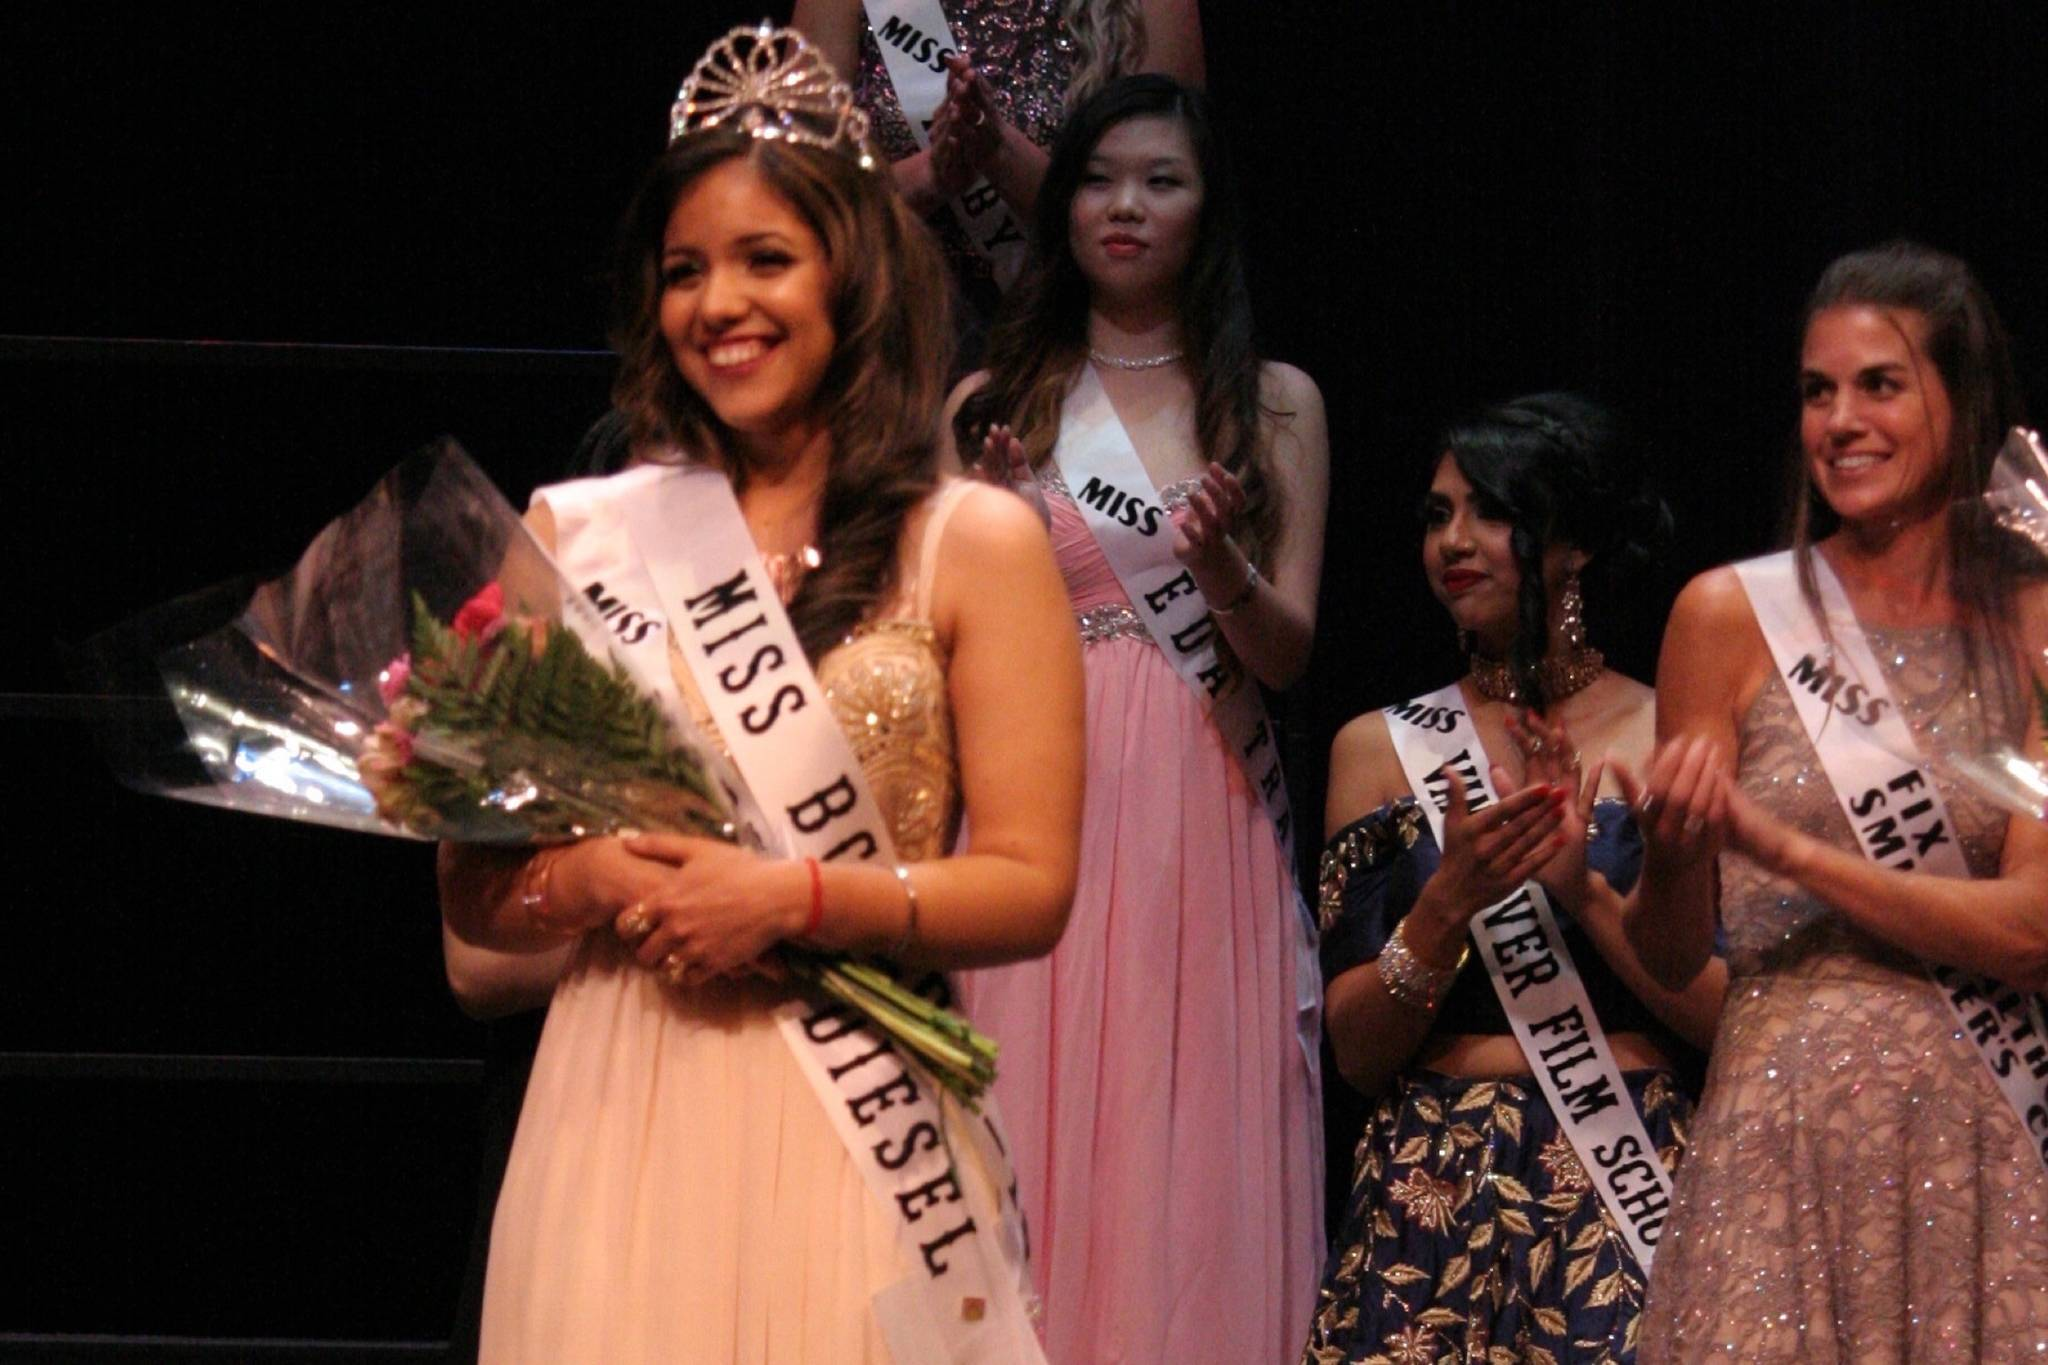 2017 Miss BC winner, Arshdeep Purba from Surrey poses on stage at the Chief Sepass Theatre in Fort Langley during last year's pageant finale (Photo courtesy of Maninder Purba)